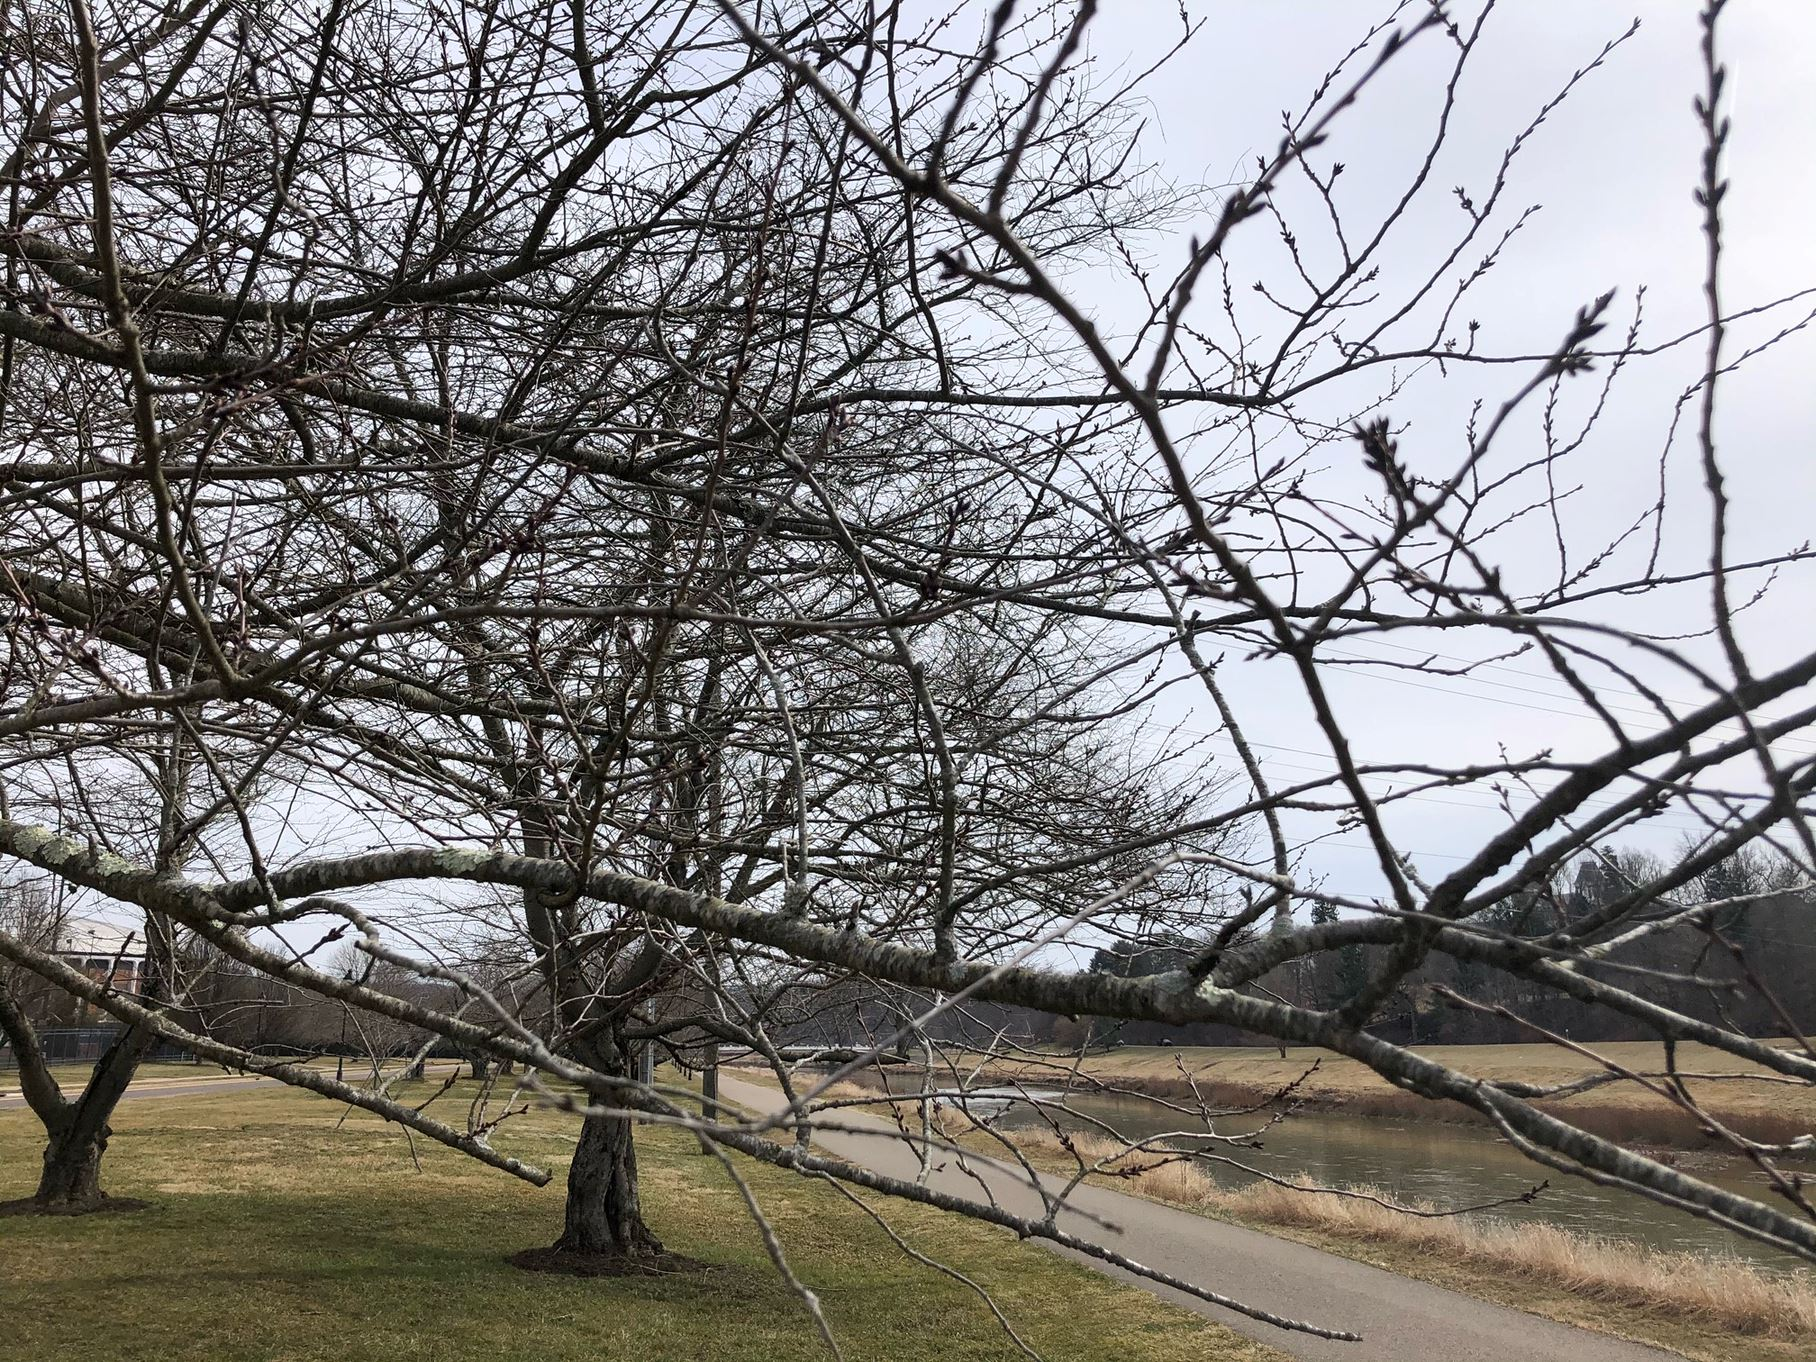 Cherry trees before blossom along the bike path on an overcast day,